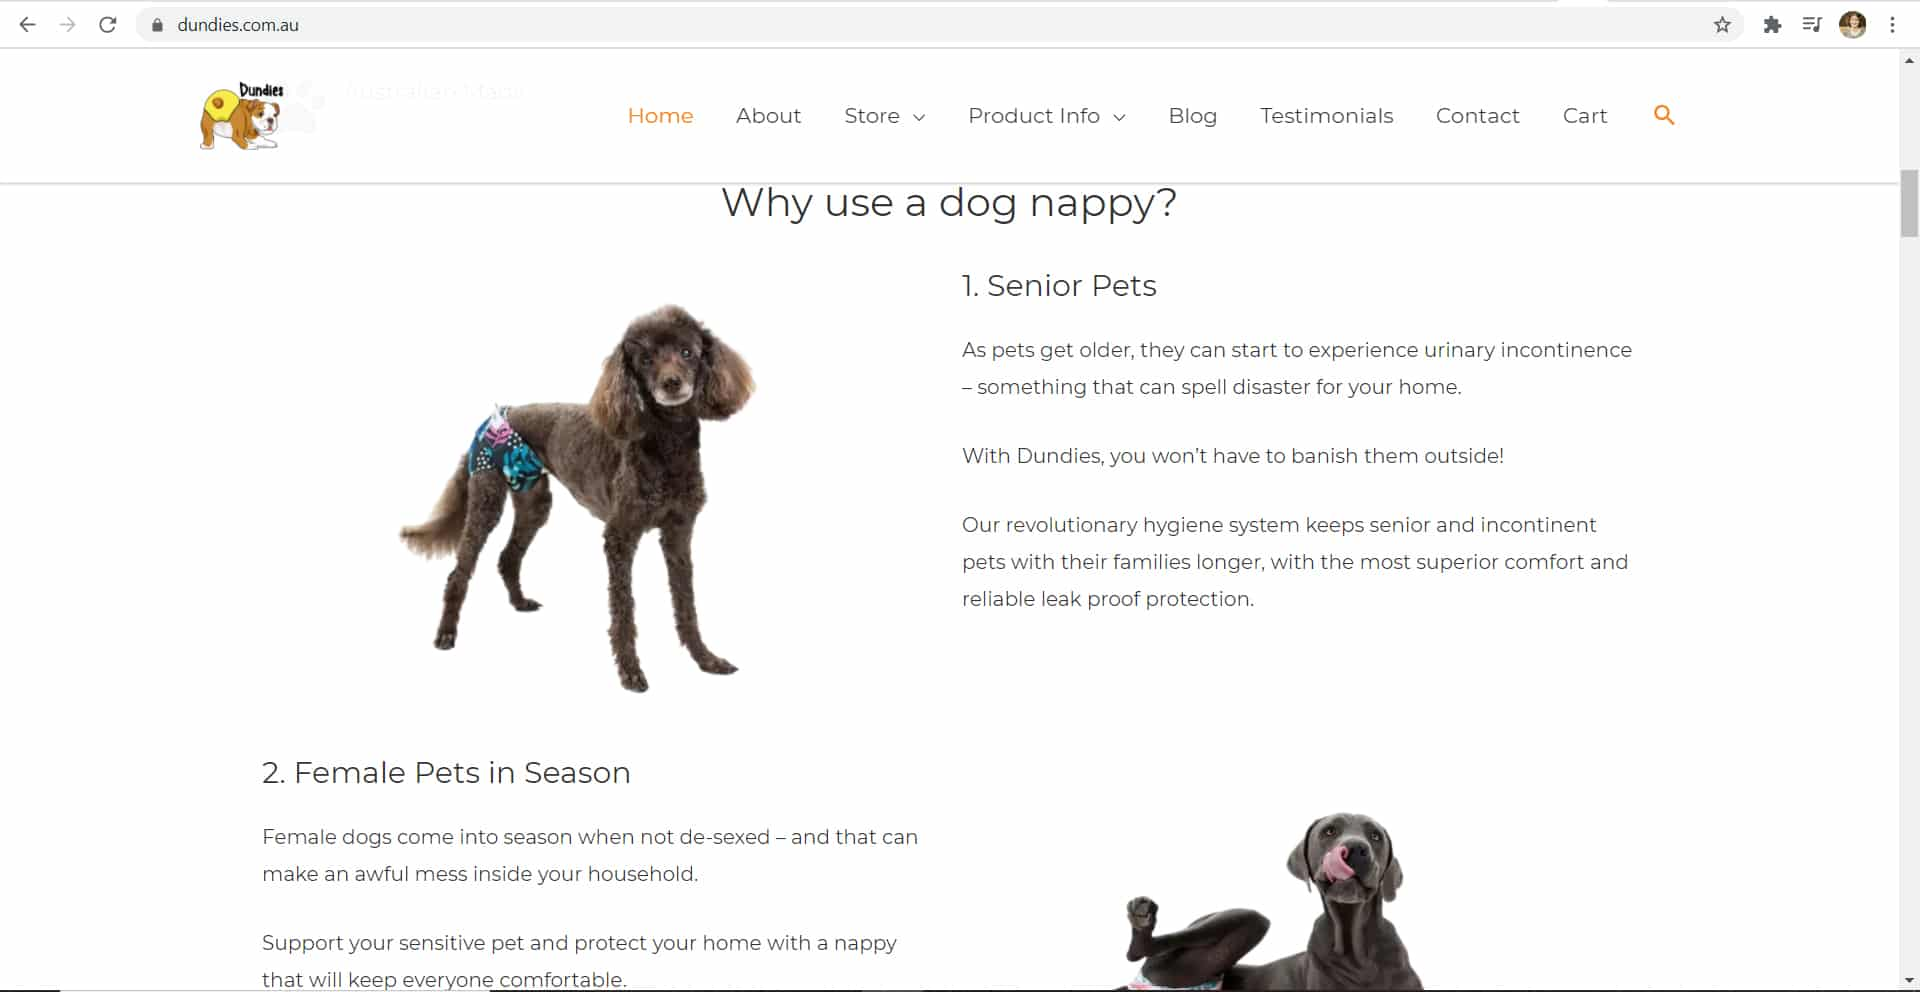 Dundies New Home Page 2 - The Rural Copywriter